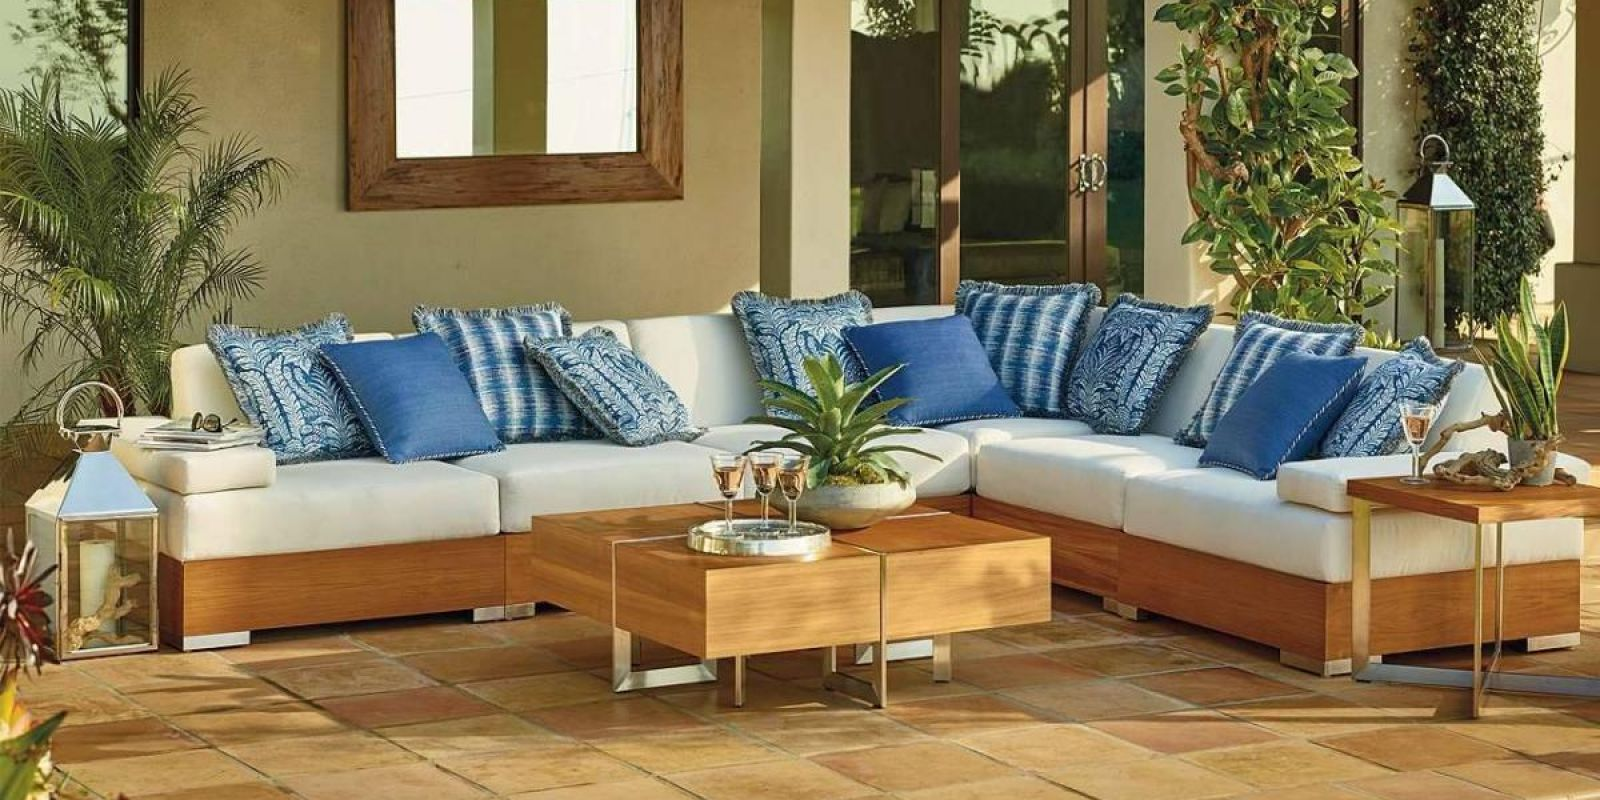 Outdoor Patio Design Specialist | American Casual Living on Casual Living Patio id=65336